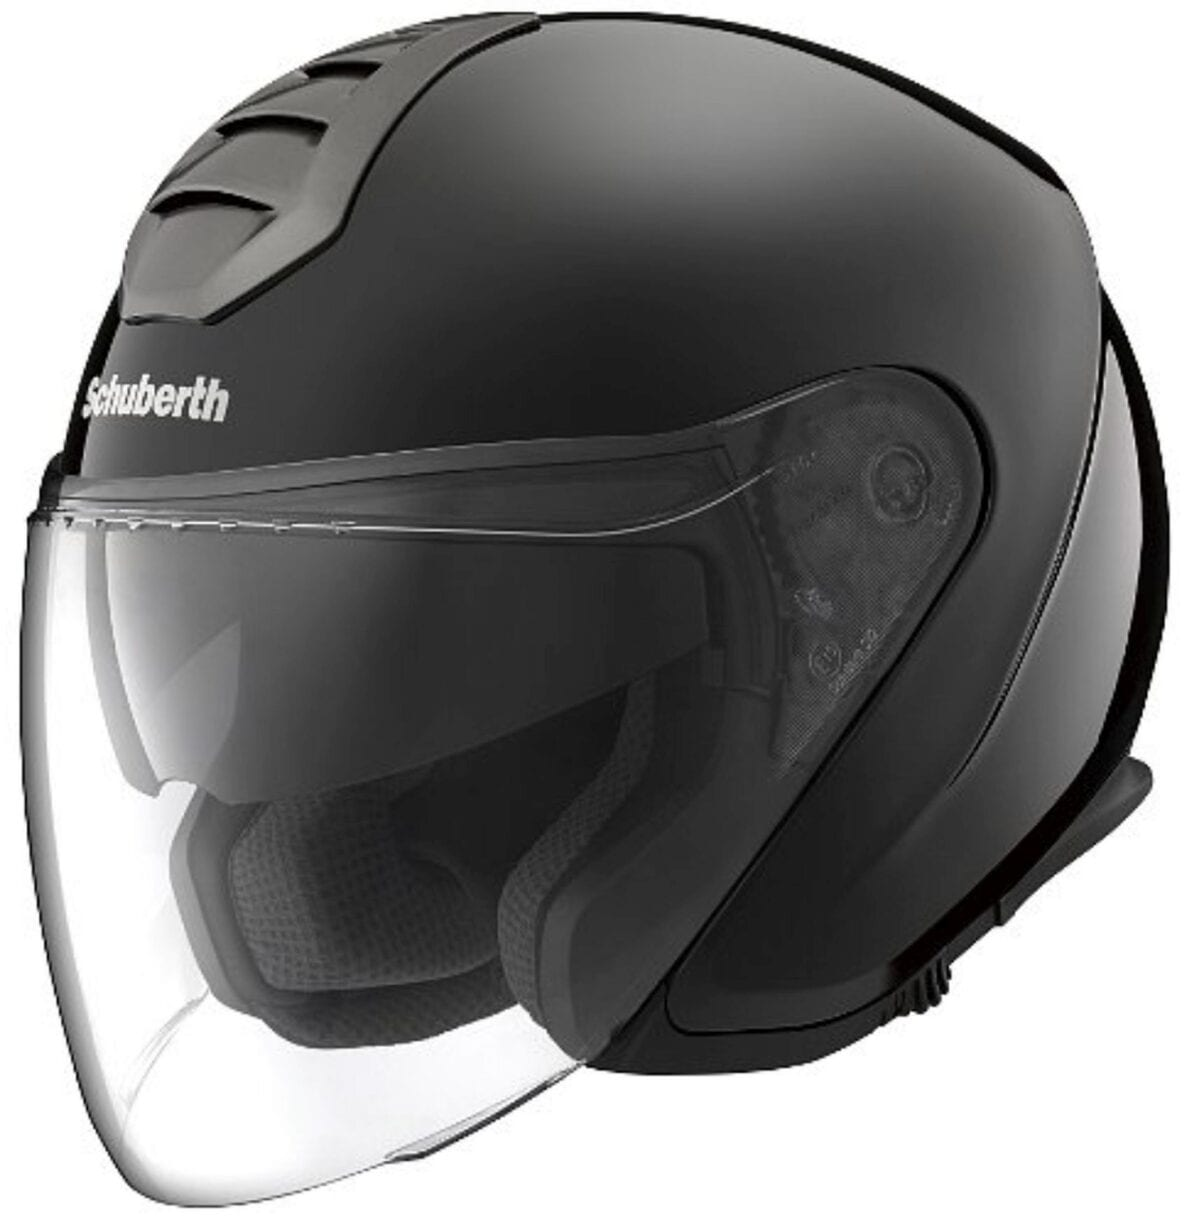 027-prdrvw-schuberth-m1_black